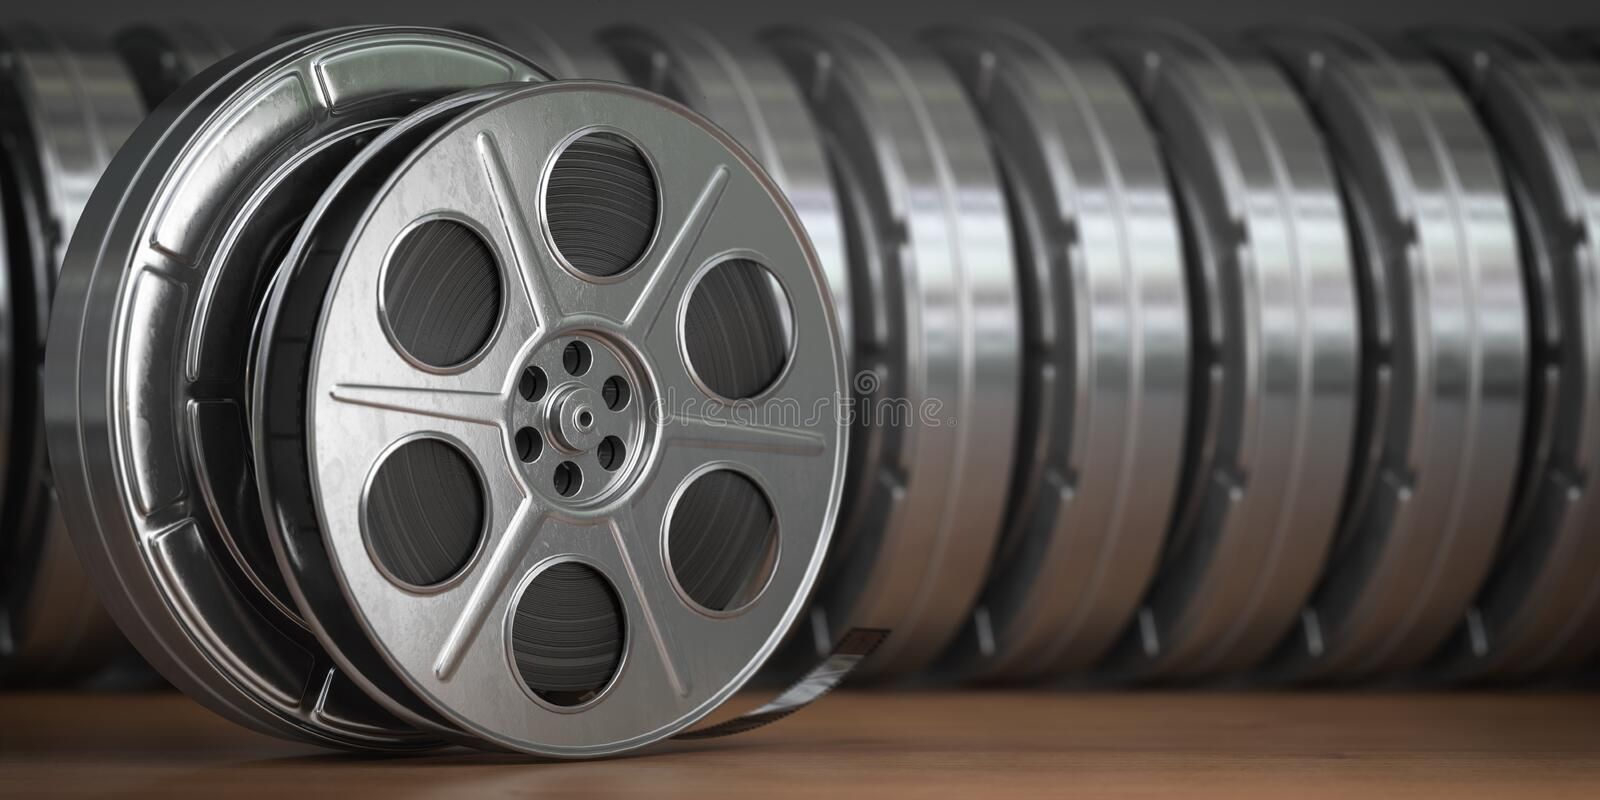 Video, cinema, movie, multimedia concept. A row of vintage film reel or film spools with filmstrip. 3d illustration stock illustration